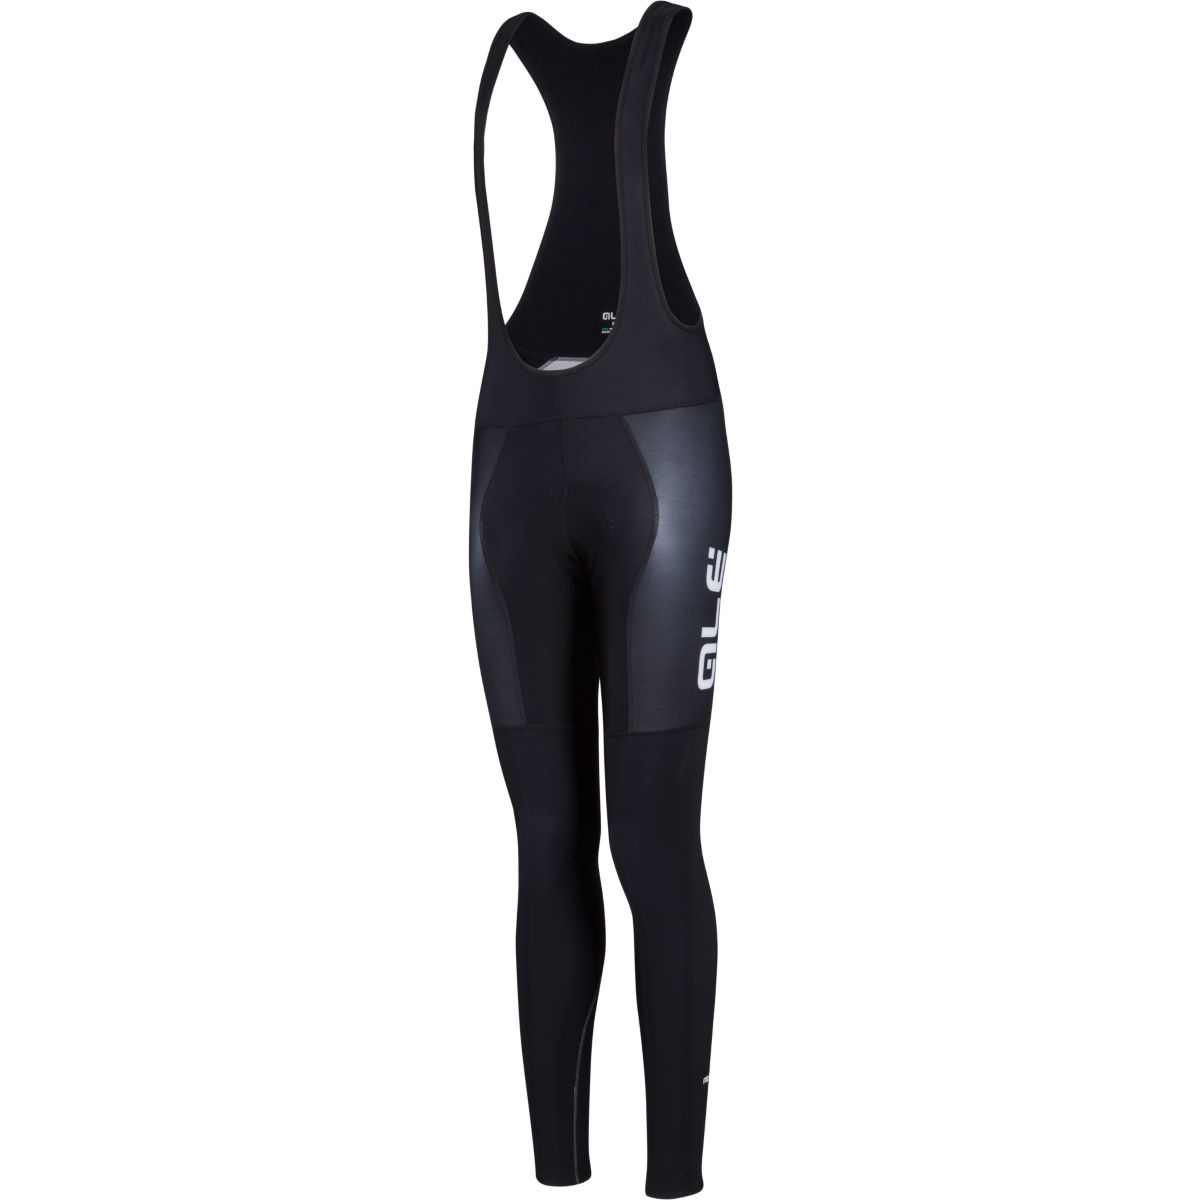 Alé Women's PRR Bering Bib Tights